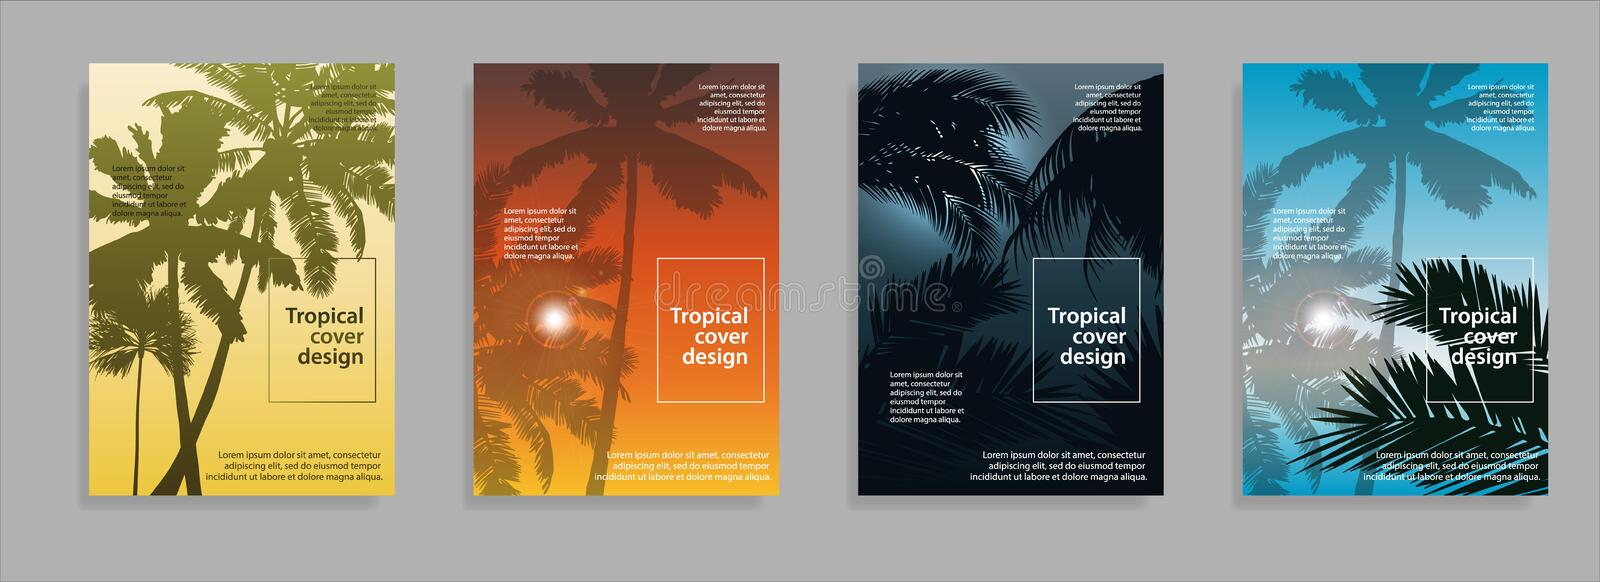 Minimal tropical covers design. Flyer cover business brochure vector design, Leaflet advertising abstract background vector illustration